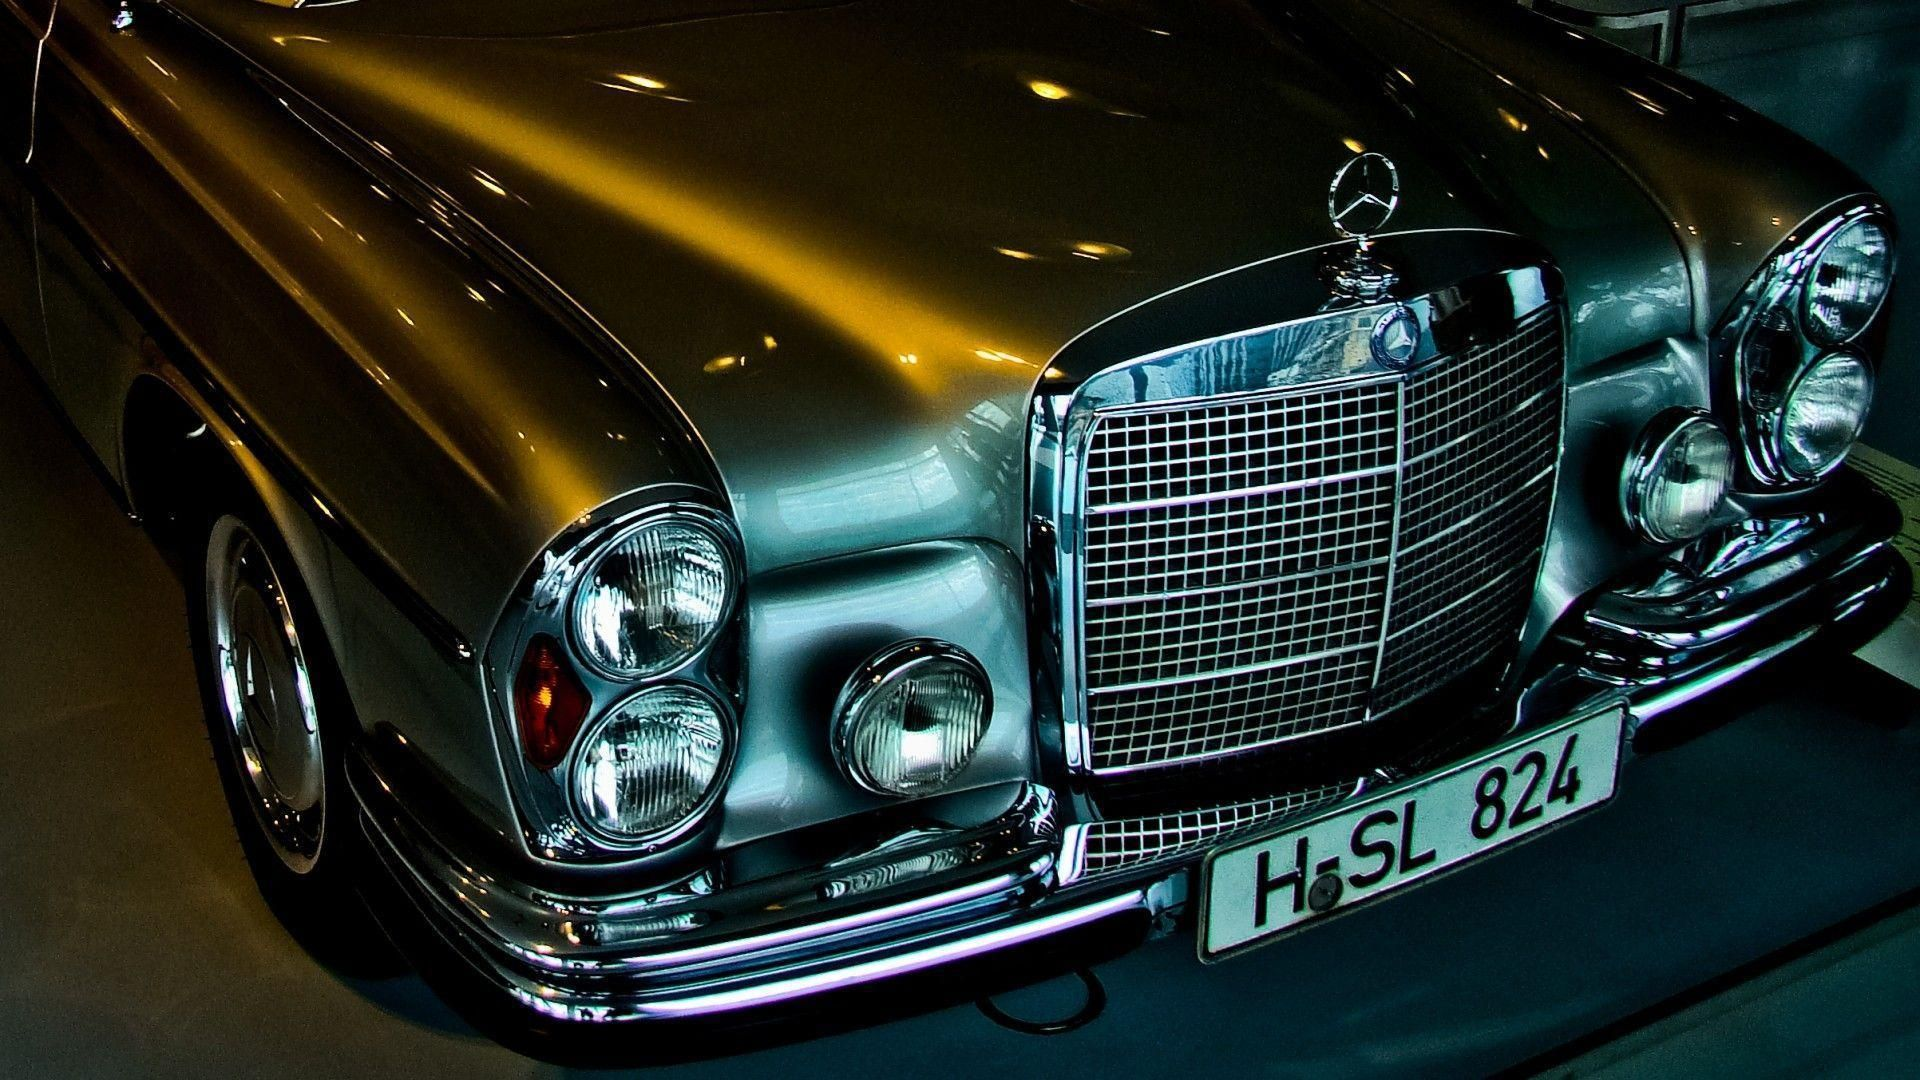 Mercedes benz free full hd wallpapers 60 httpurdunewtrend mercedes benz free full hd wallpapers 60 http voltagebd Image collections